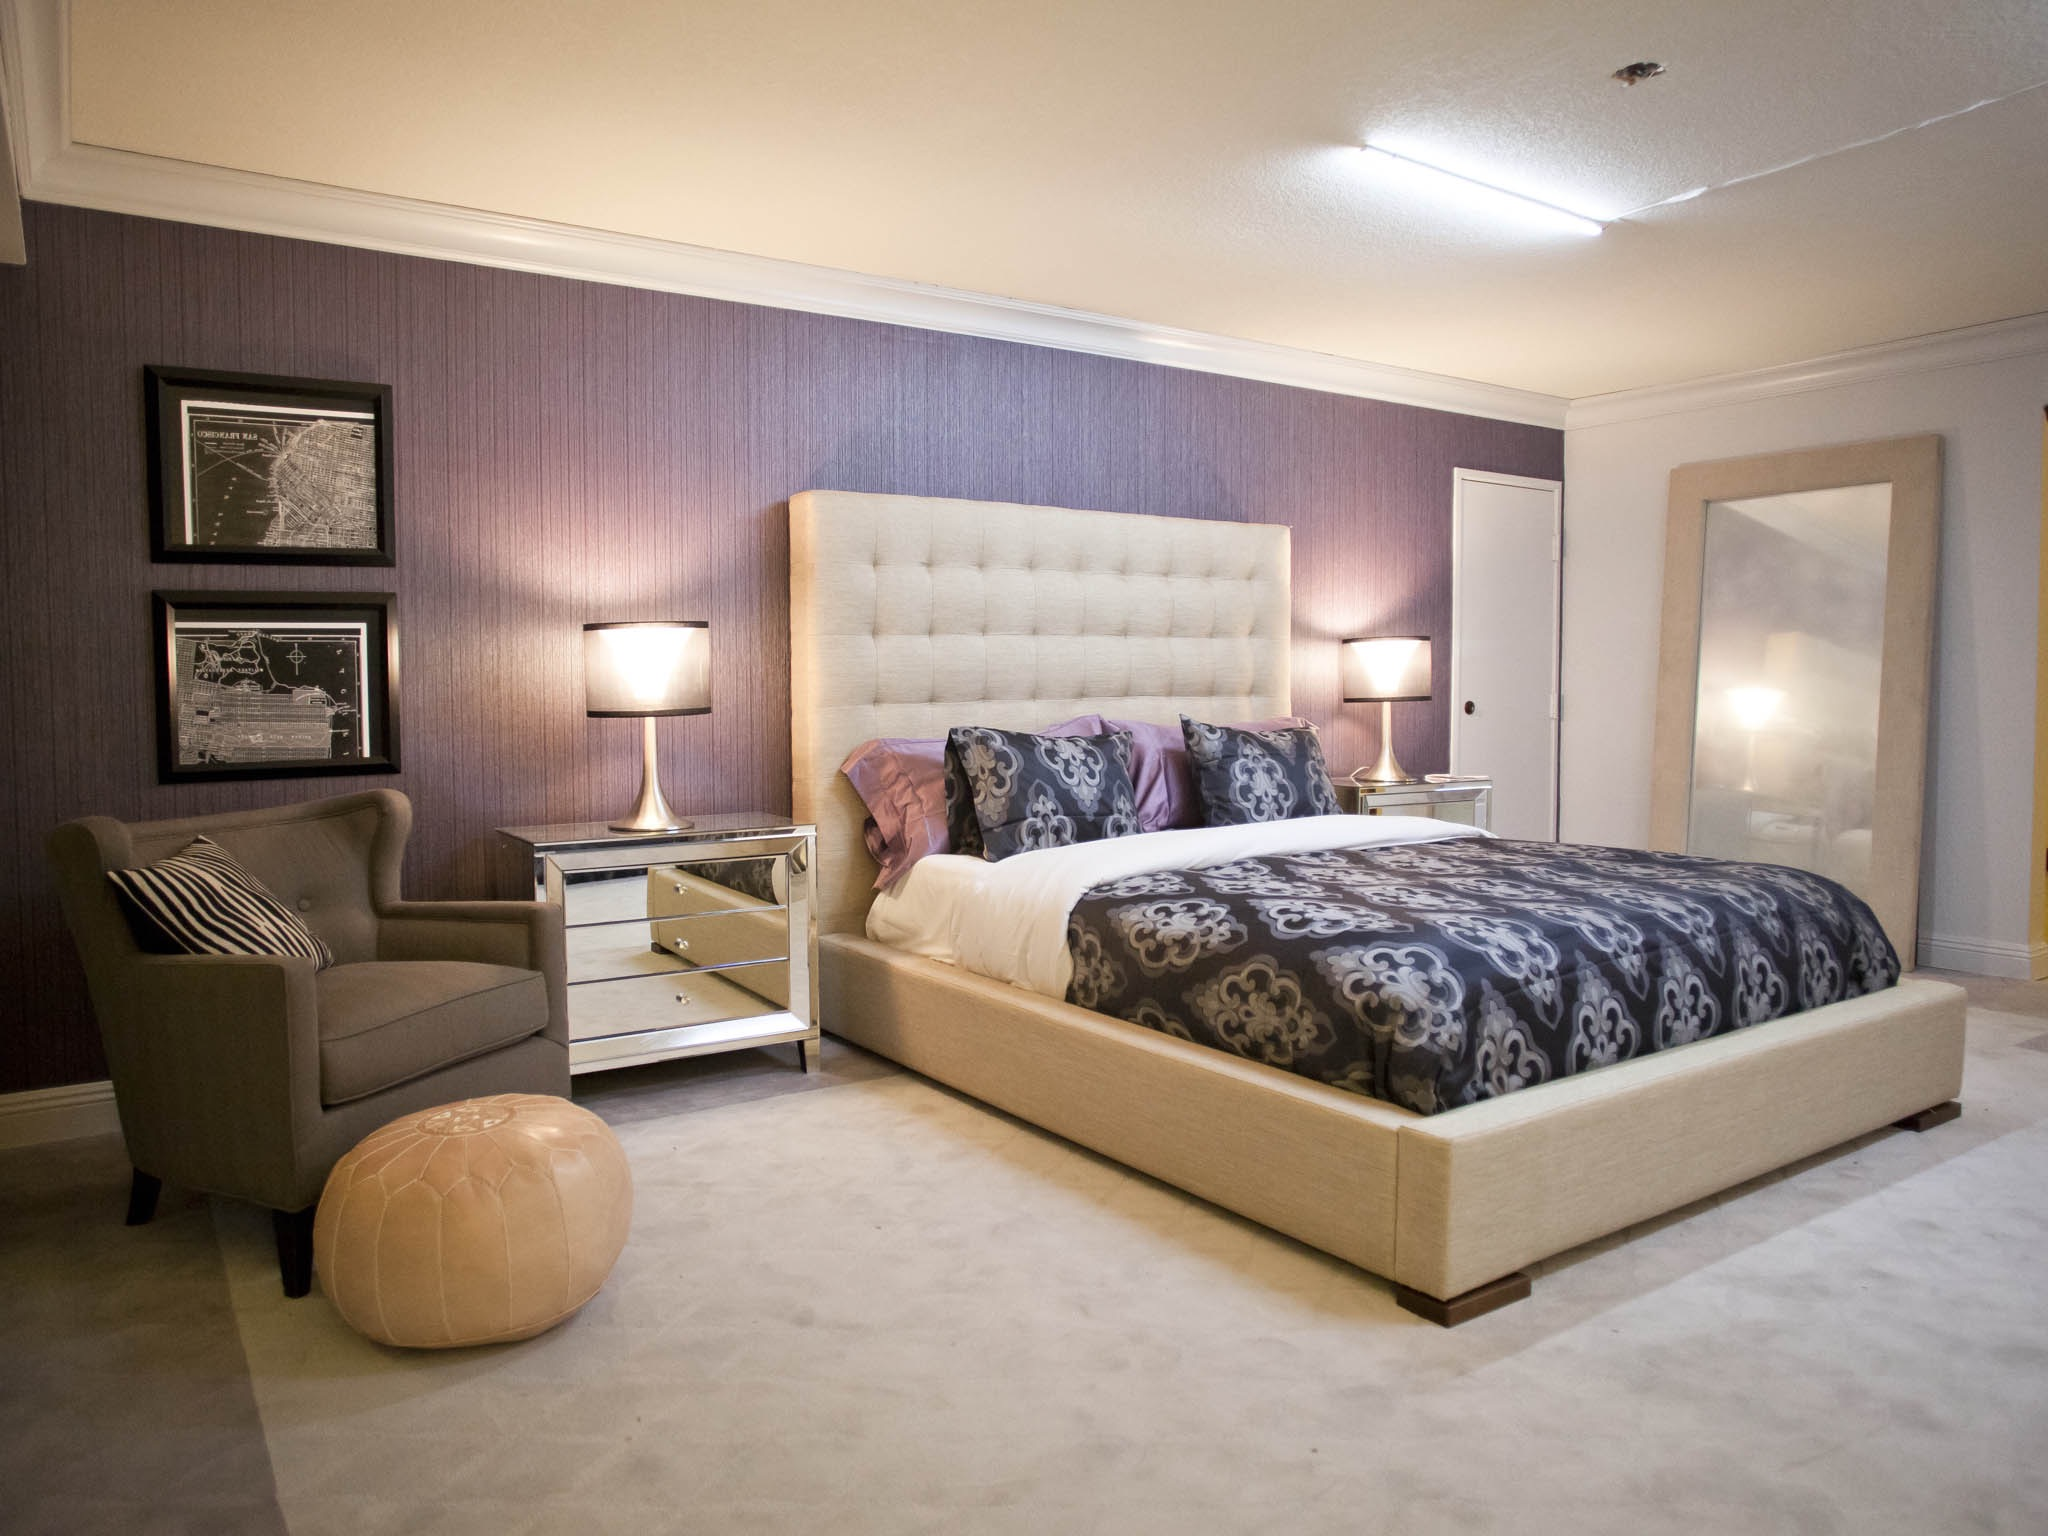 Featured Image of Modern Bedroom Decor In Comfortable Nuance